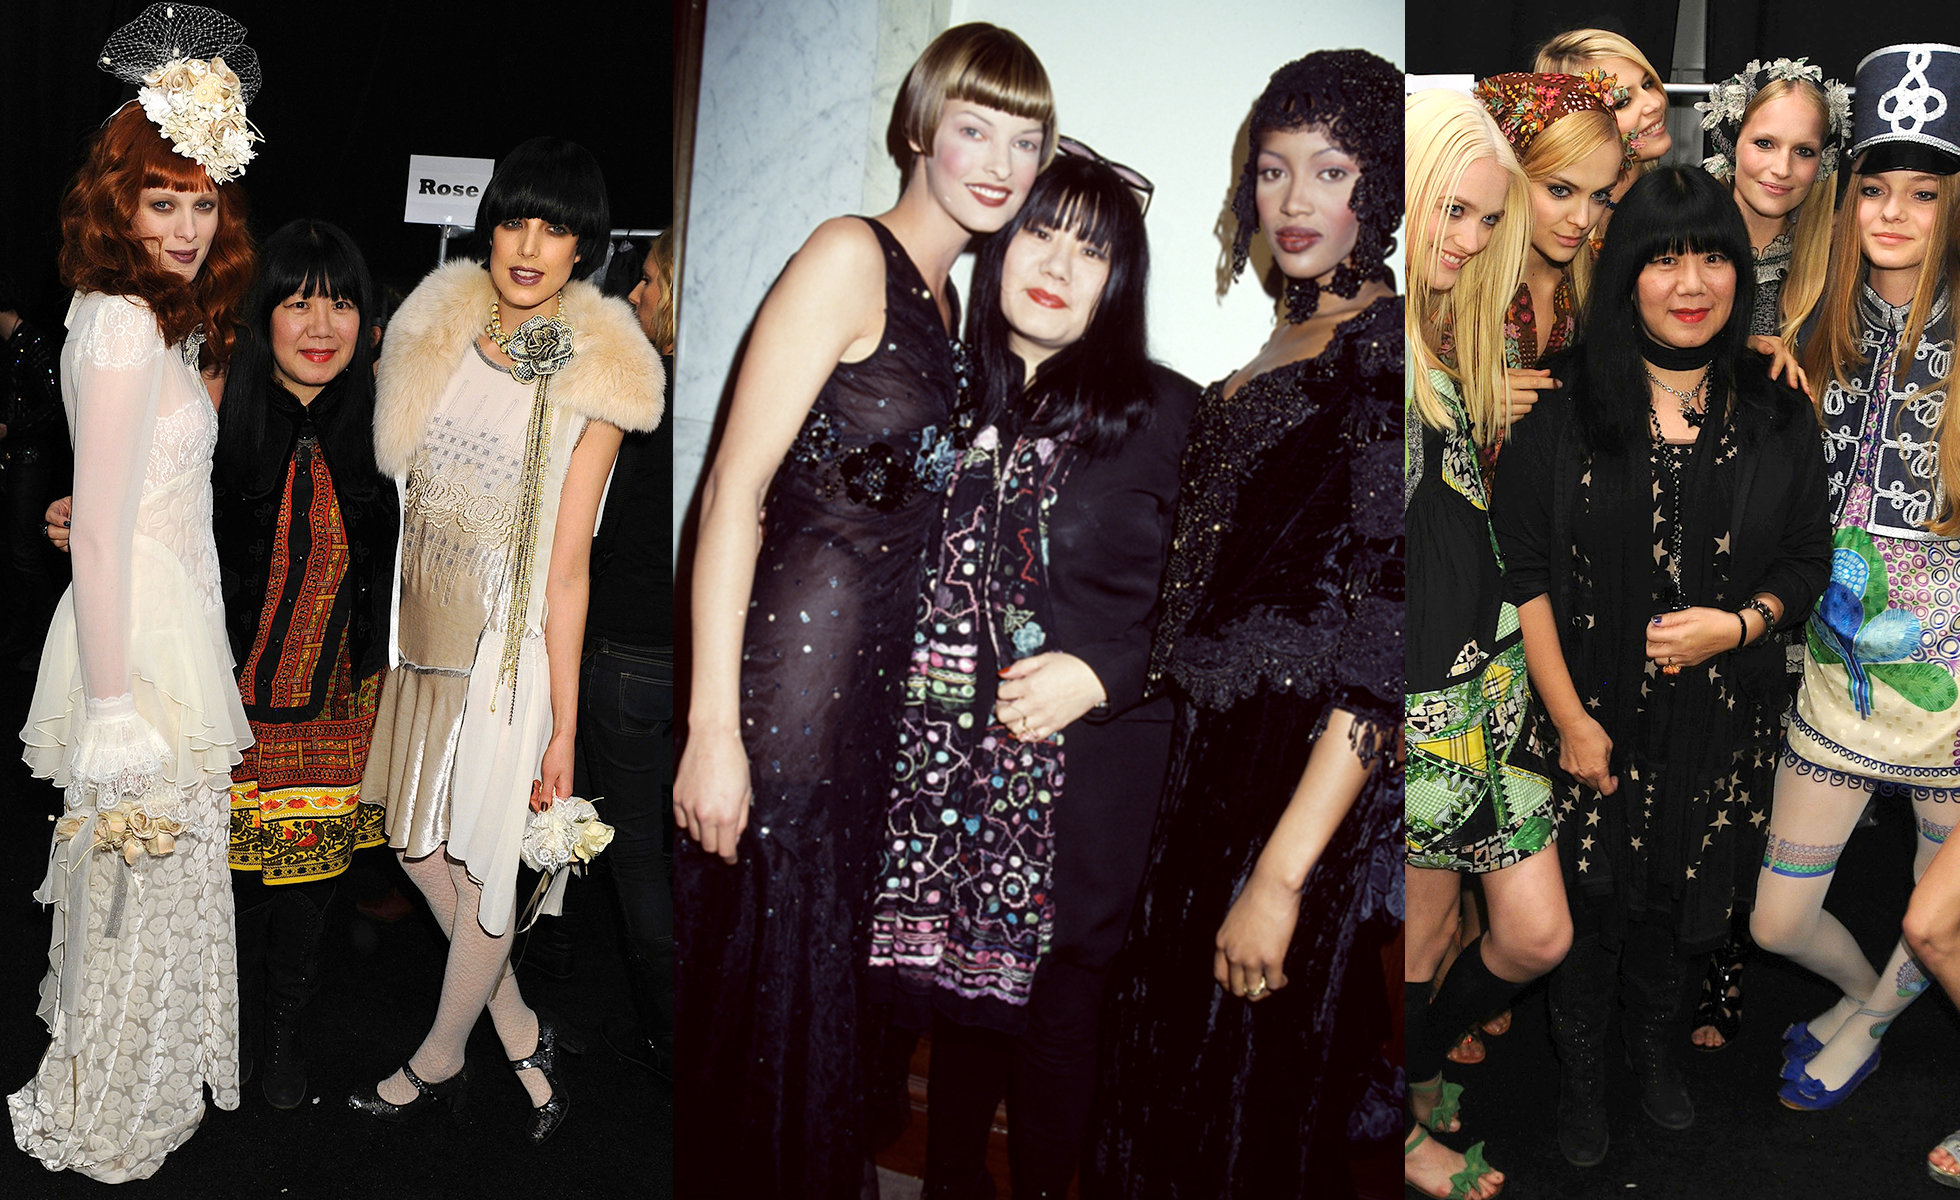 Left: Anna Sui Fall 2010 Fashion Show | Photo: Jennifer Graylock; Center: Anna Sui Fall 1993 Fashion Show | Photo: Roxanne Lowit; Right: Backstage at Anna Sui Spring 2010 Circus Collection | Photo: Jessica Graylock